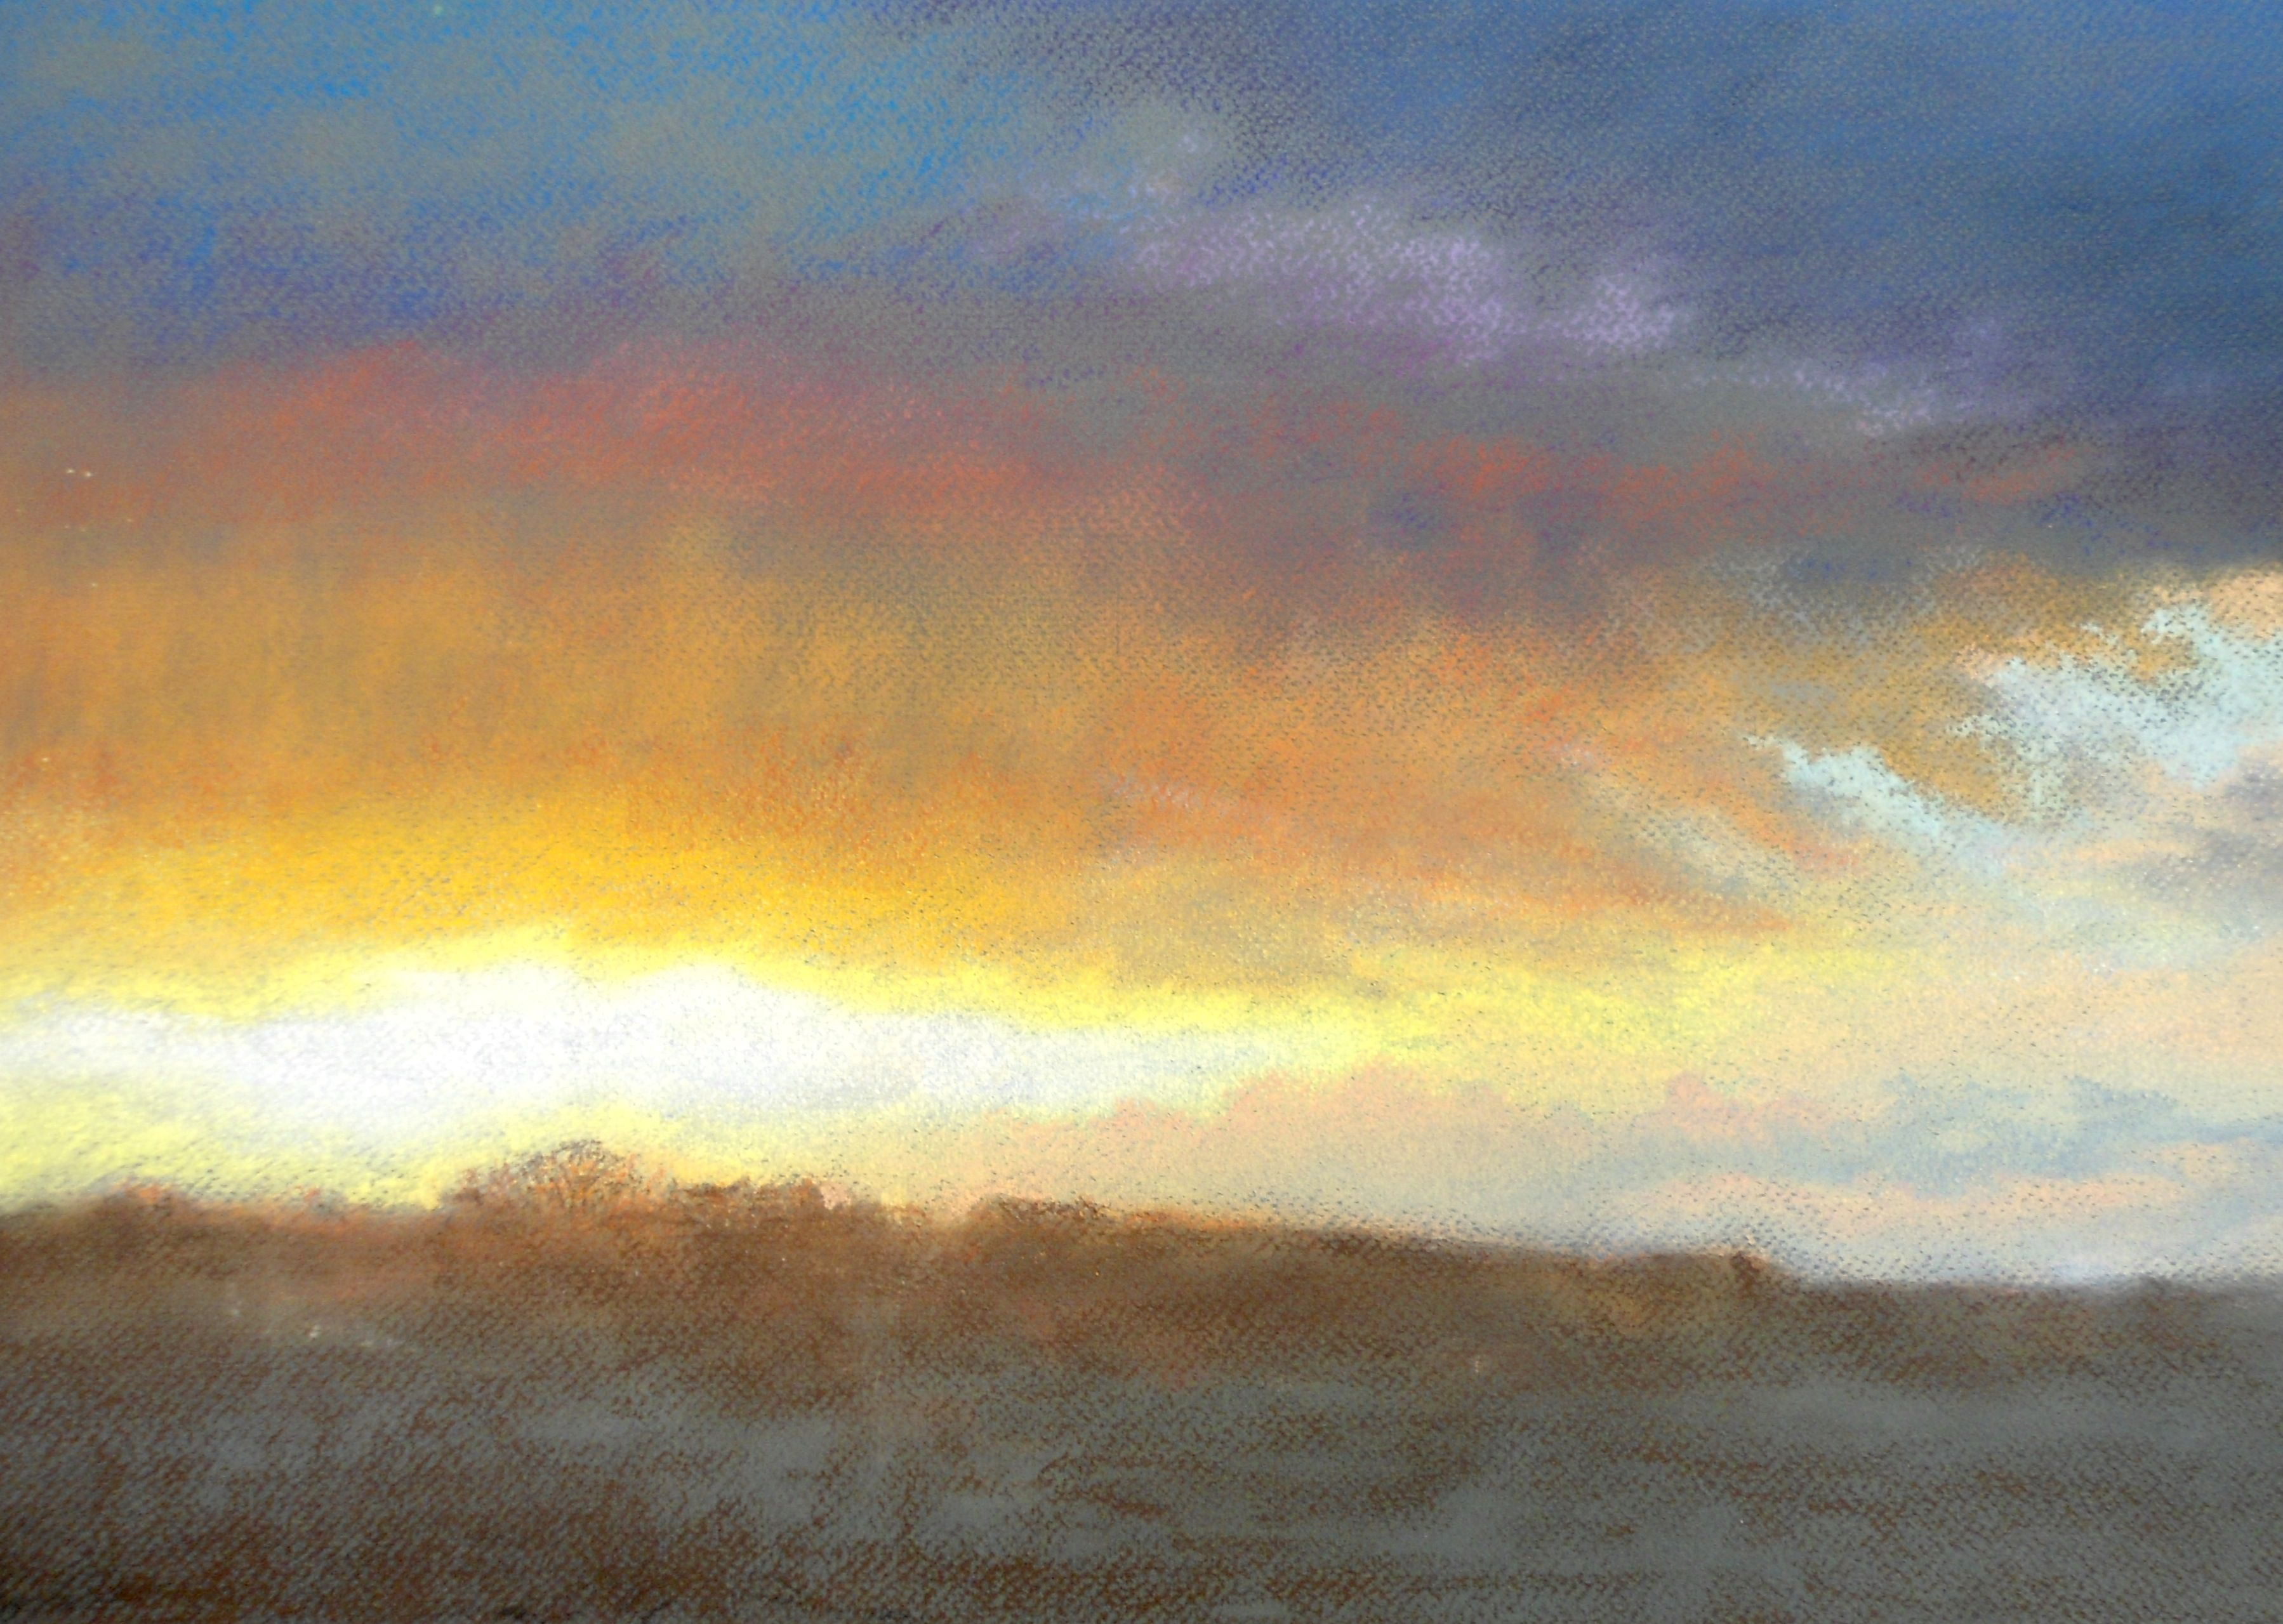 How To Paint Landscapes In Soft Pastel By Mike Howley Video Lessons At Arttutor Com Soft Pastel Art Acrilic Paintings Pastel Art